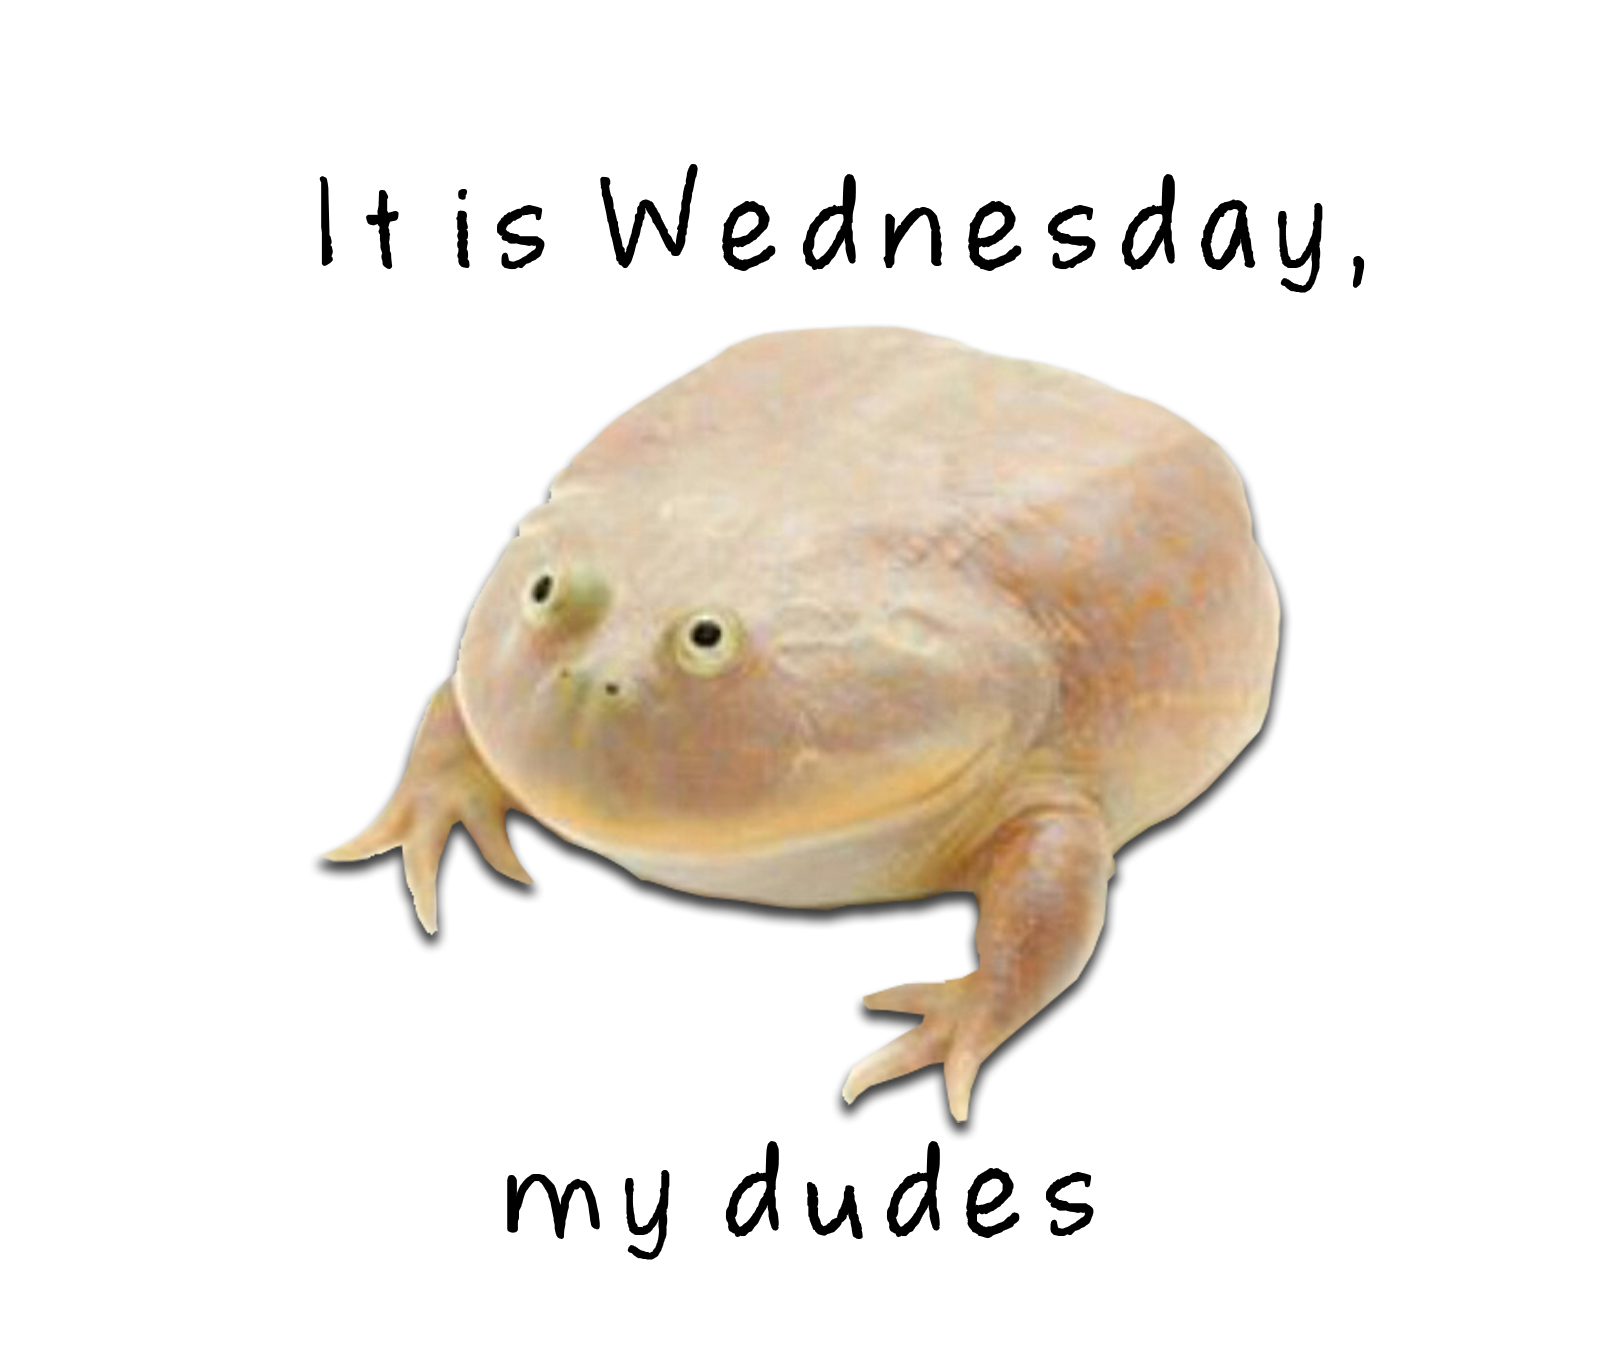 Wednesday frog png. I am a